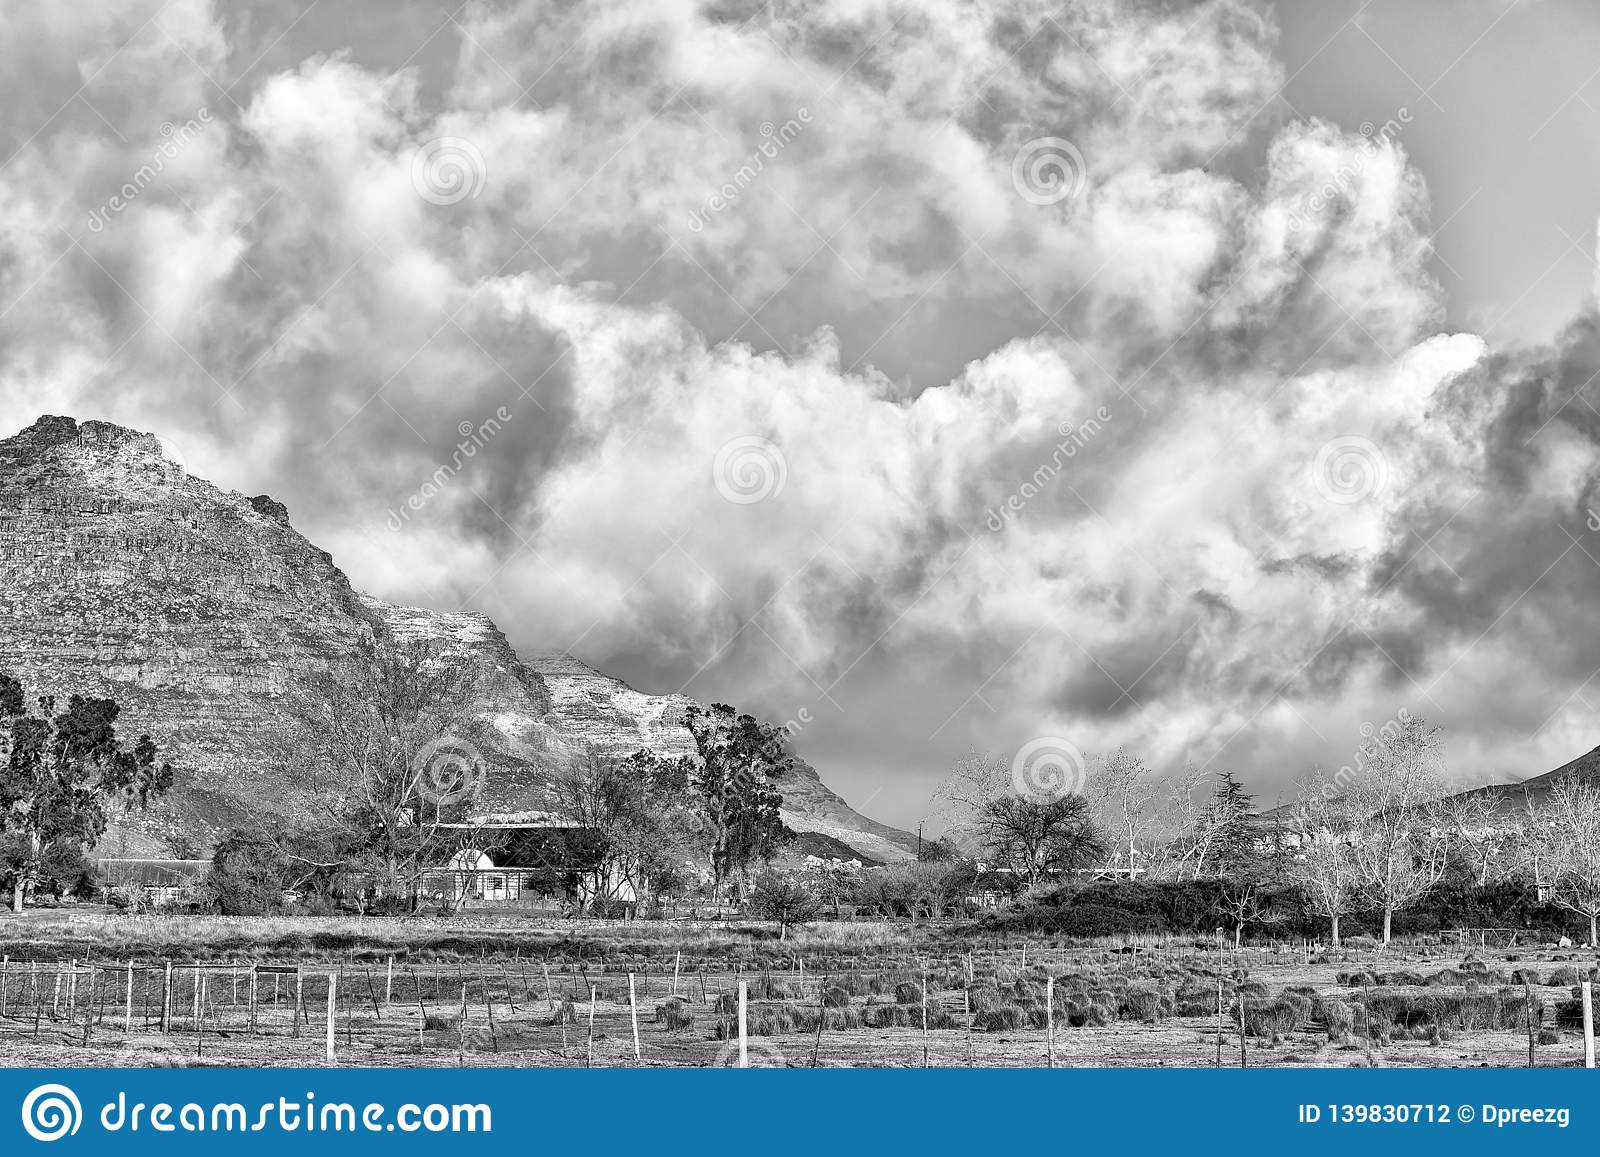 Snow is visible on the mountains at Kromrivier Cederberg. Monochrome